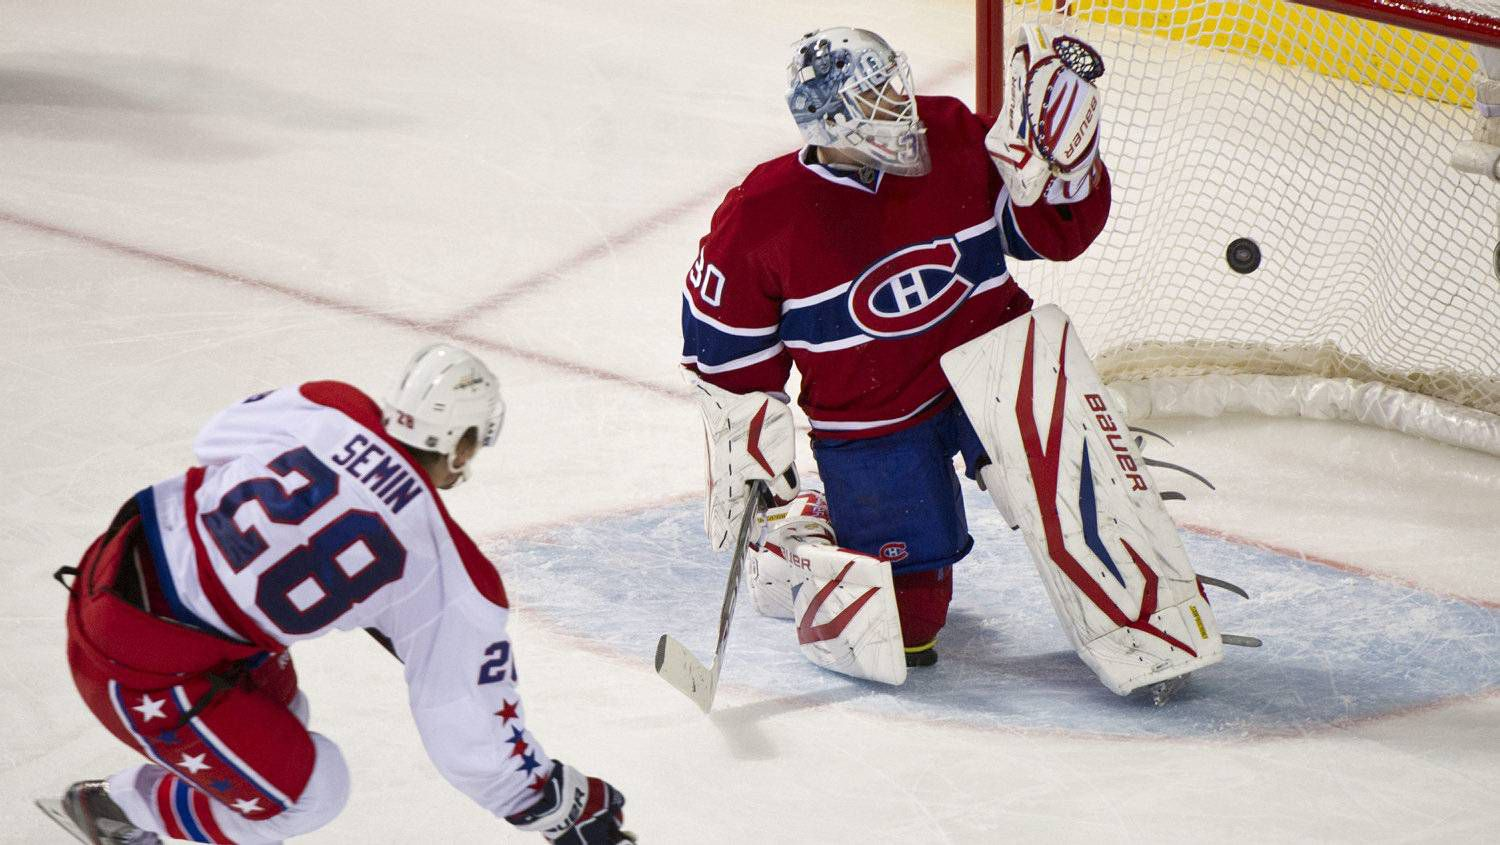 fa6bb35e1c6 Habs shut down by Caps - The Globe and Mail